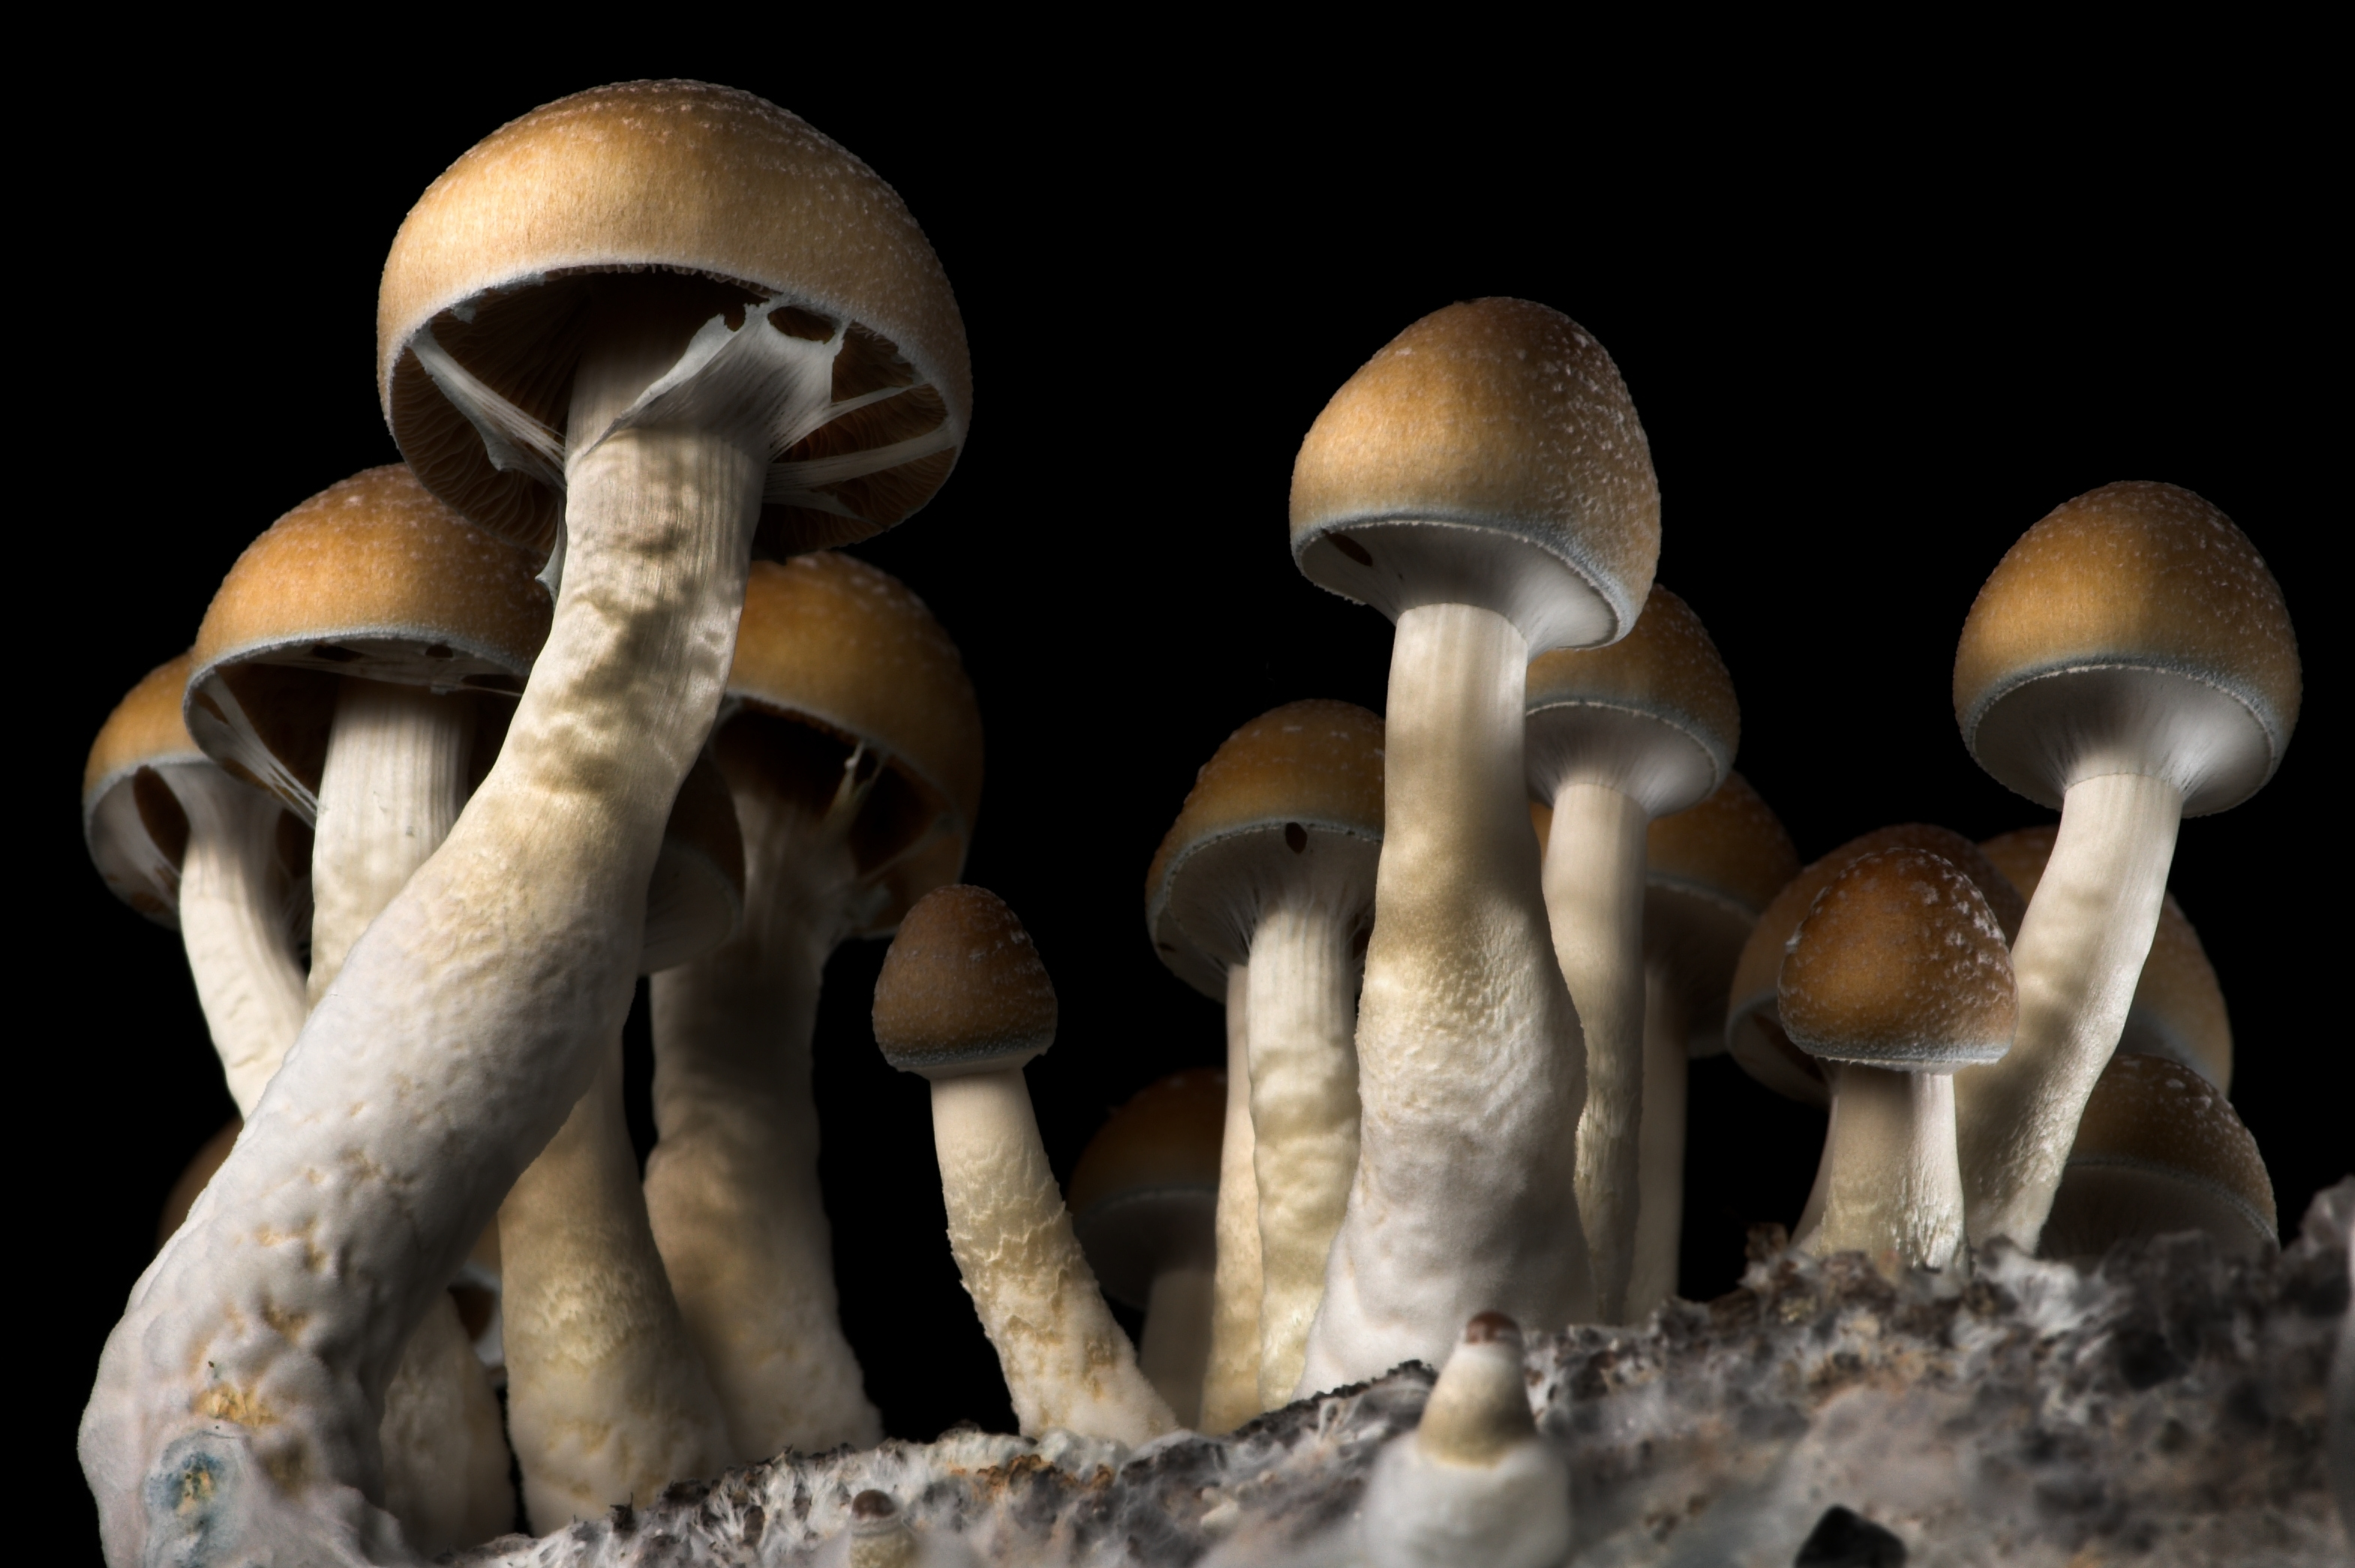 These States Are Leading the Fight to Legalize Shrooms - VICE